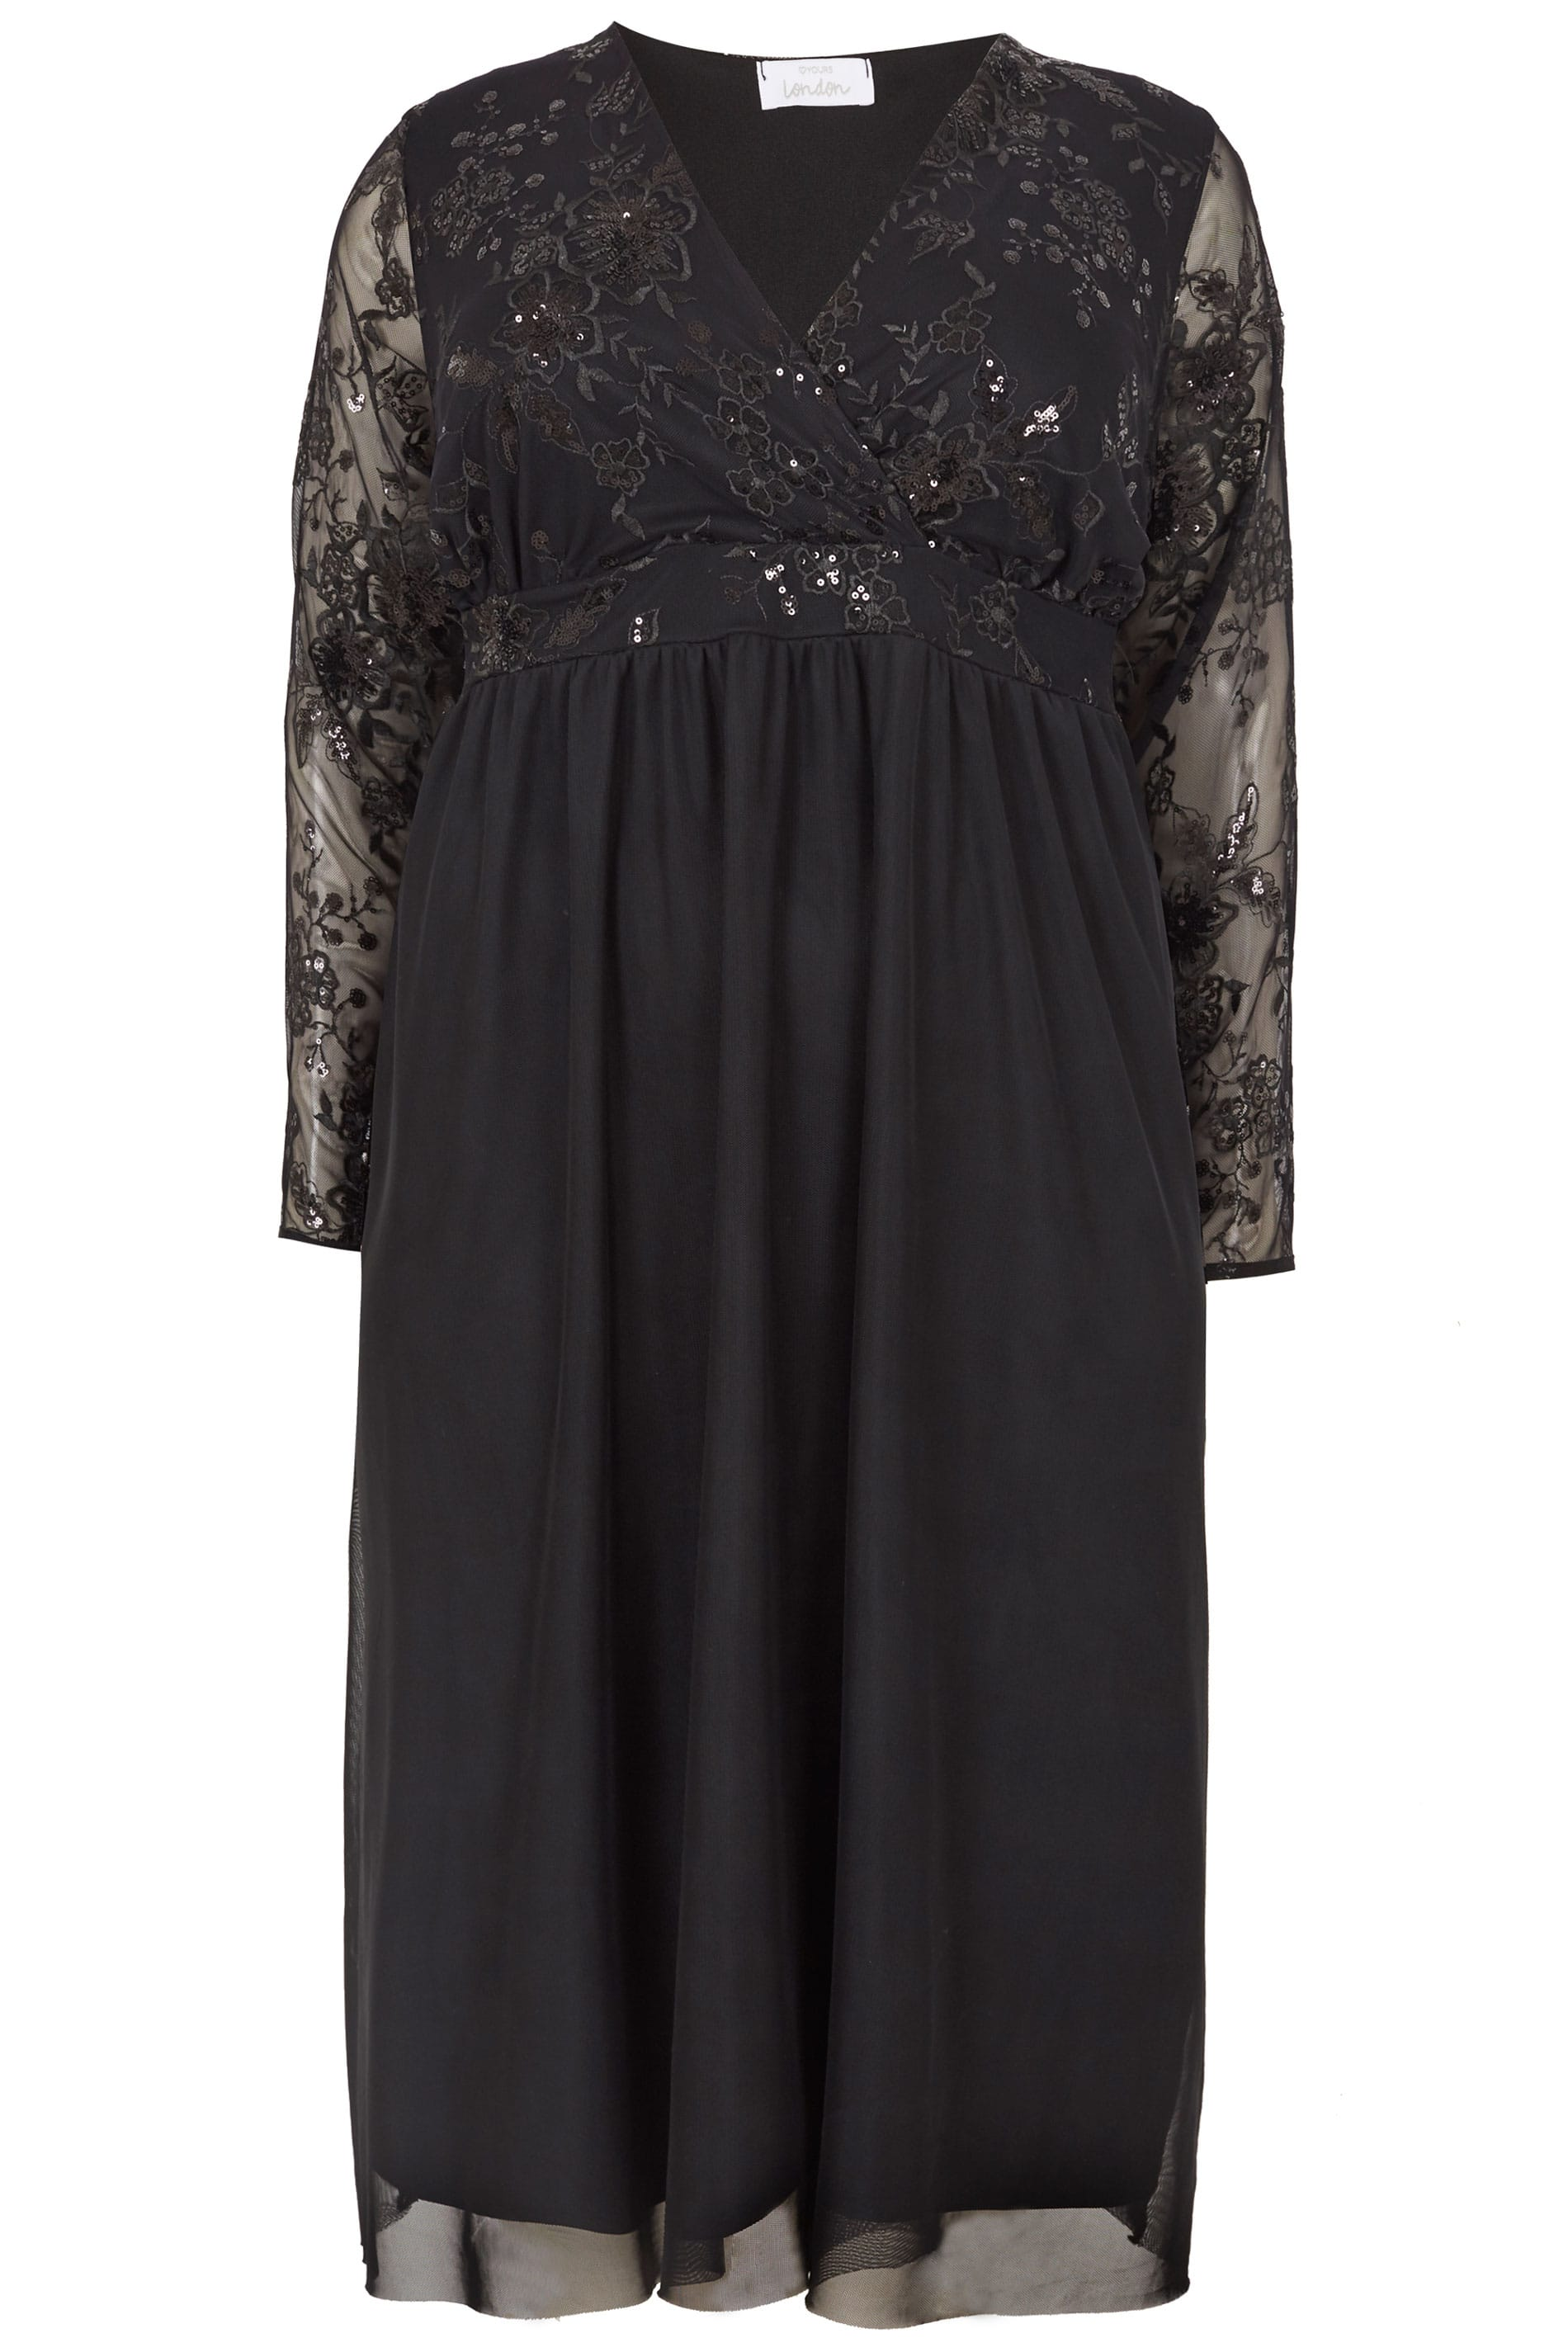 bd65029801c YOURS LONDON Black Sequin Embellished Lace Dress, Plus size 16 to 32